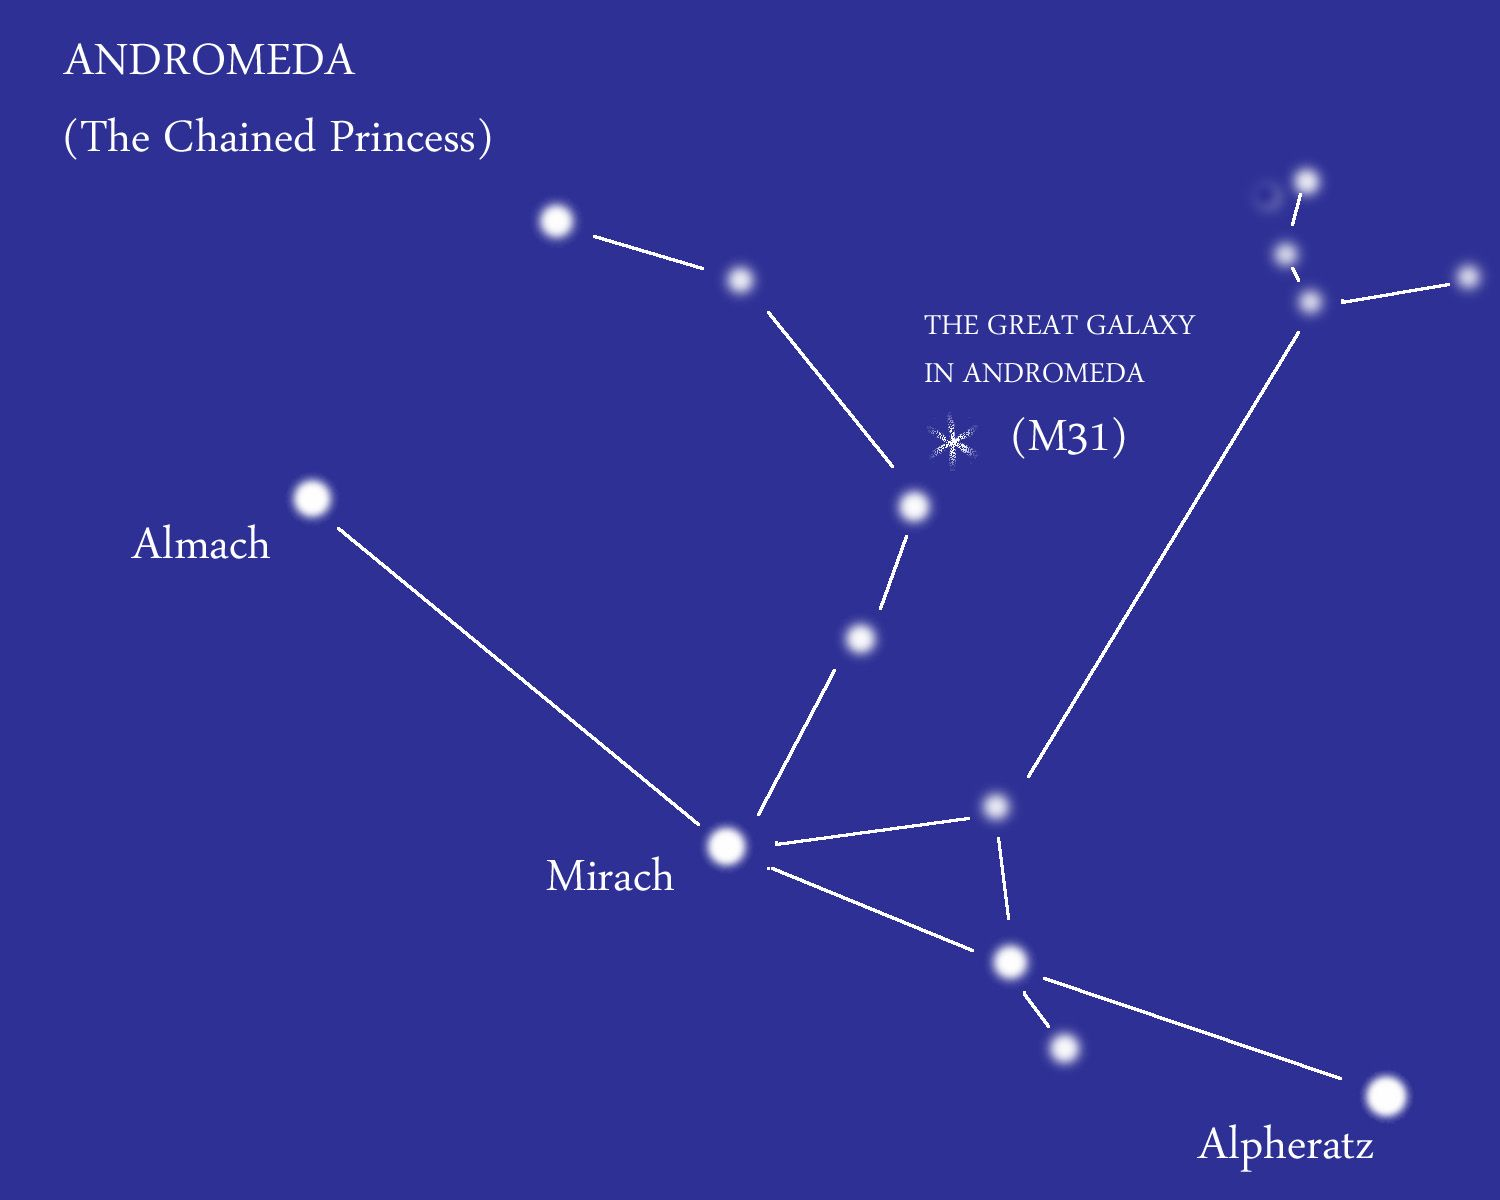 medium resolution of andromeda the chained princess the constellation is best known for the andromeda galaxy m31 which is the closest galaxy to our own milky way